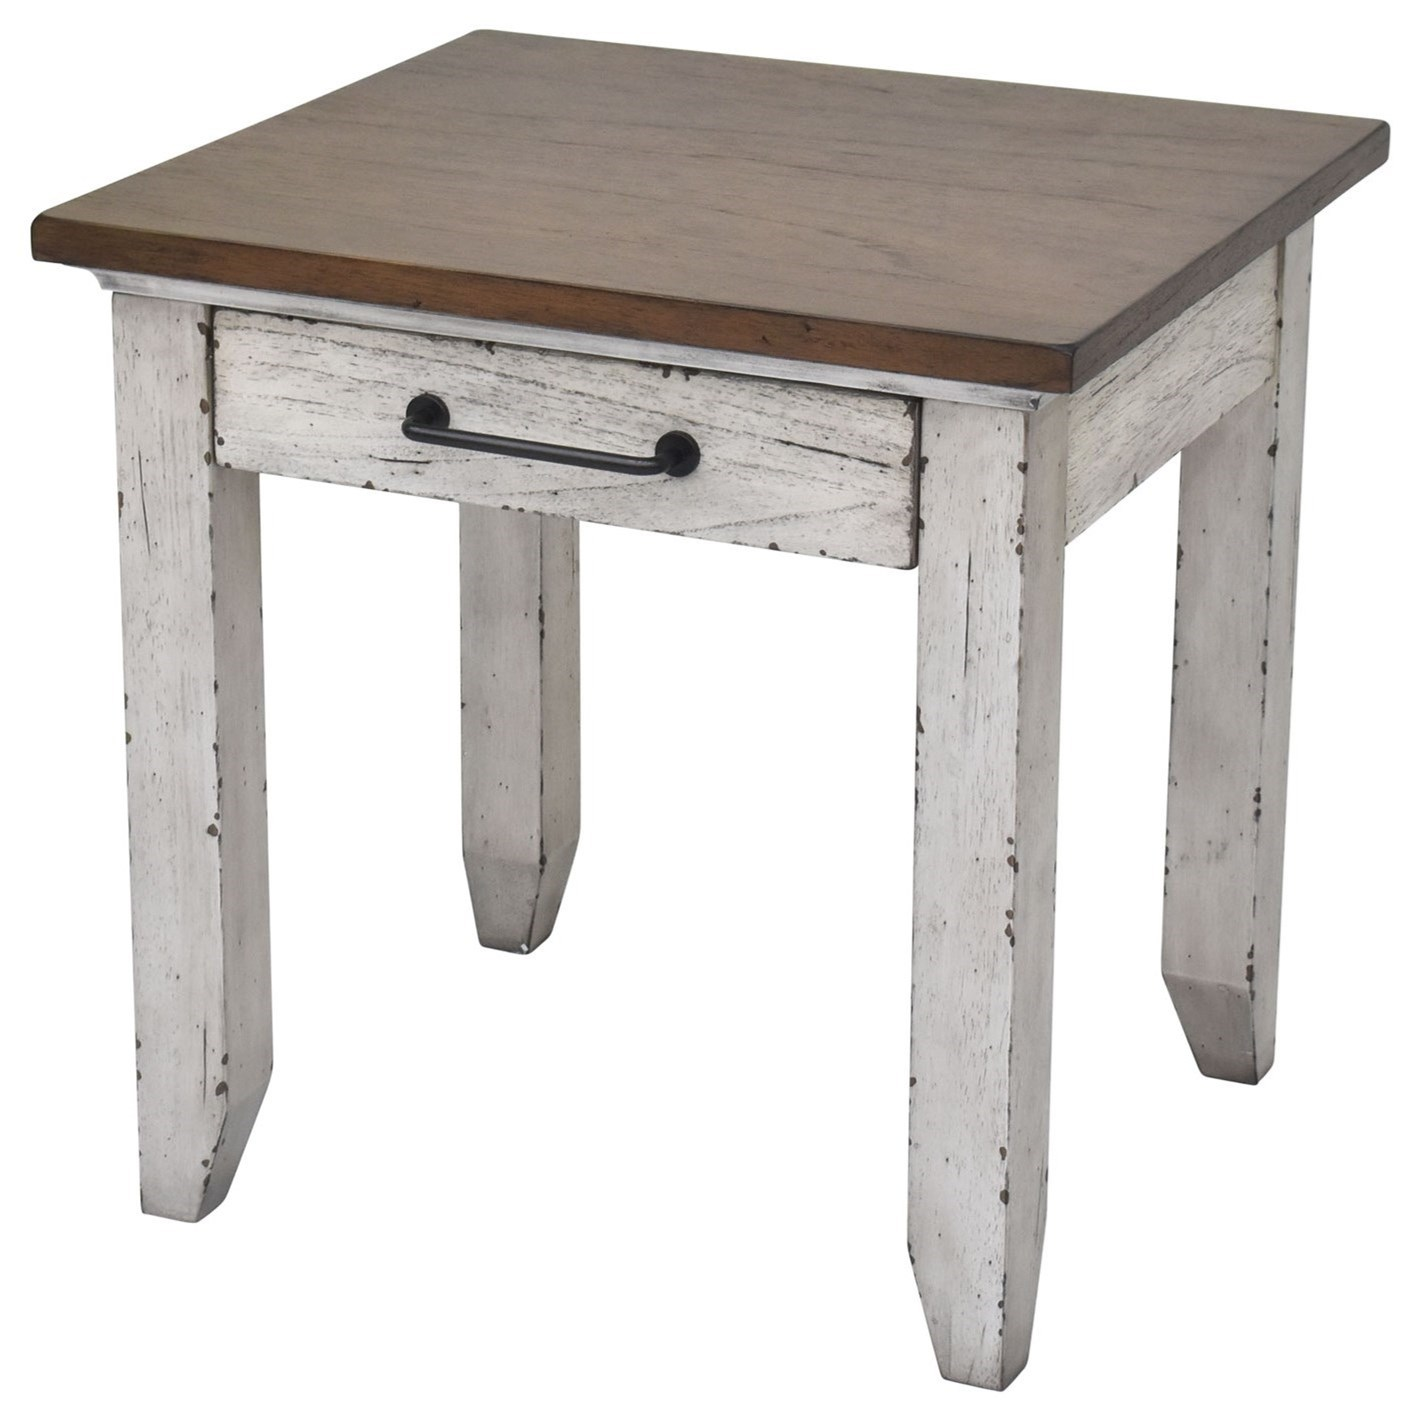 Bear Creek End Table by Steve Silver at Walker's Furniture